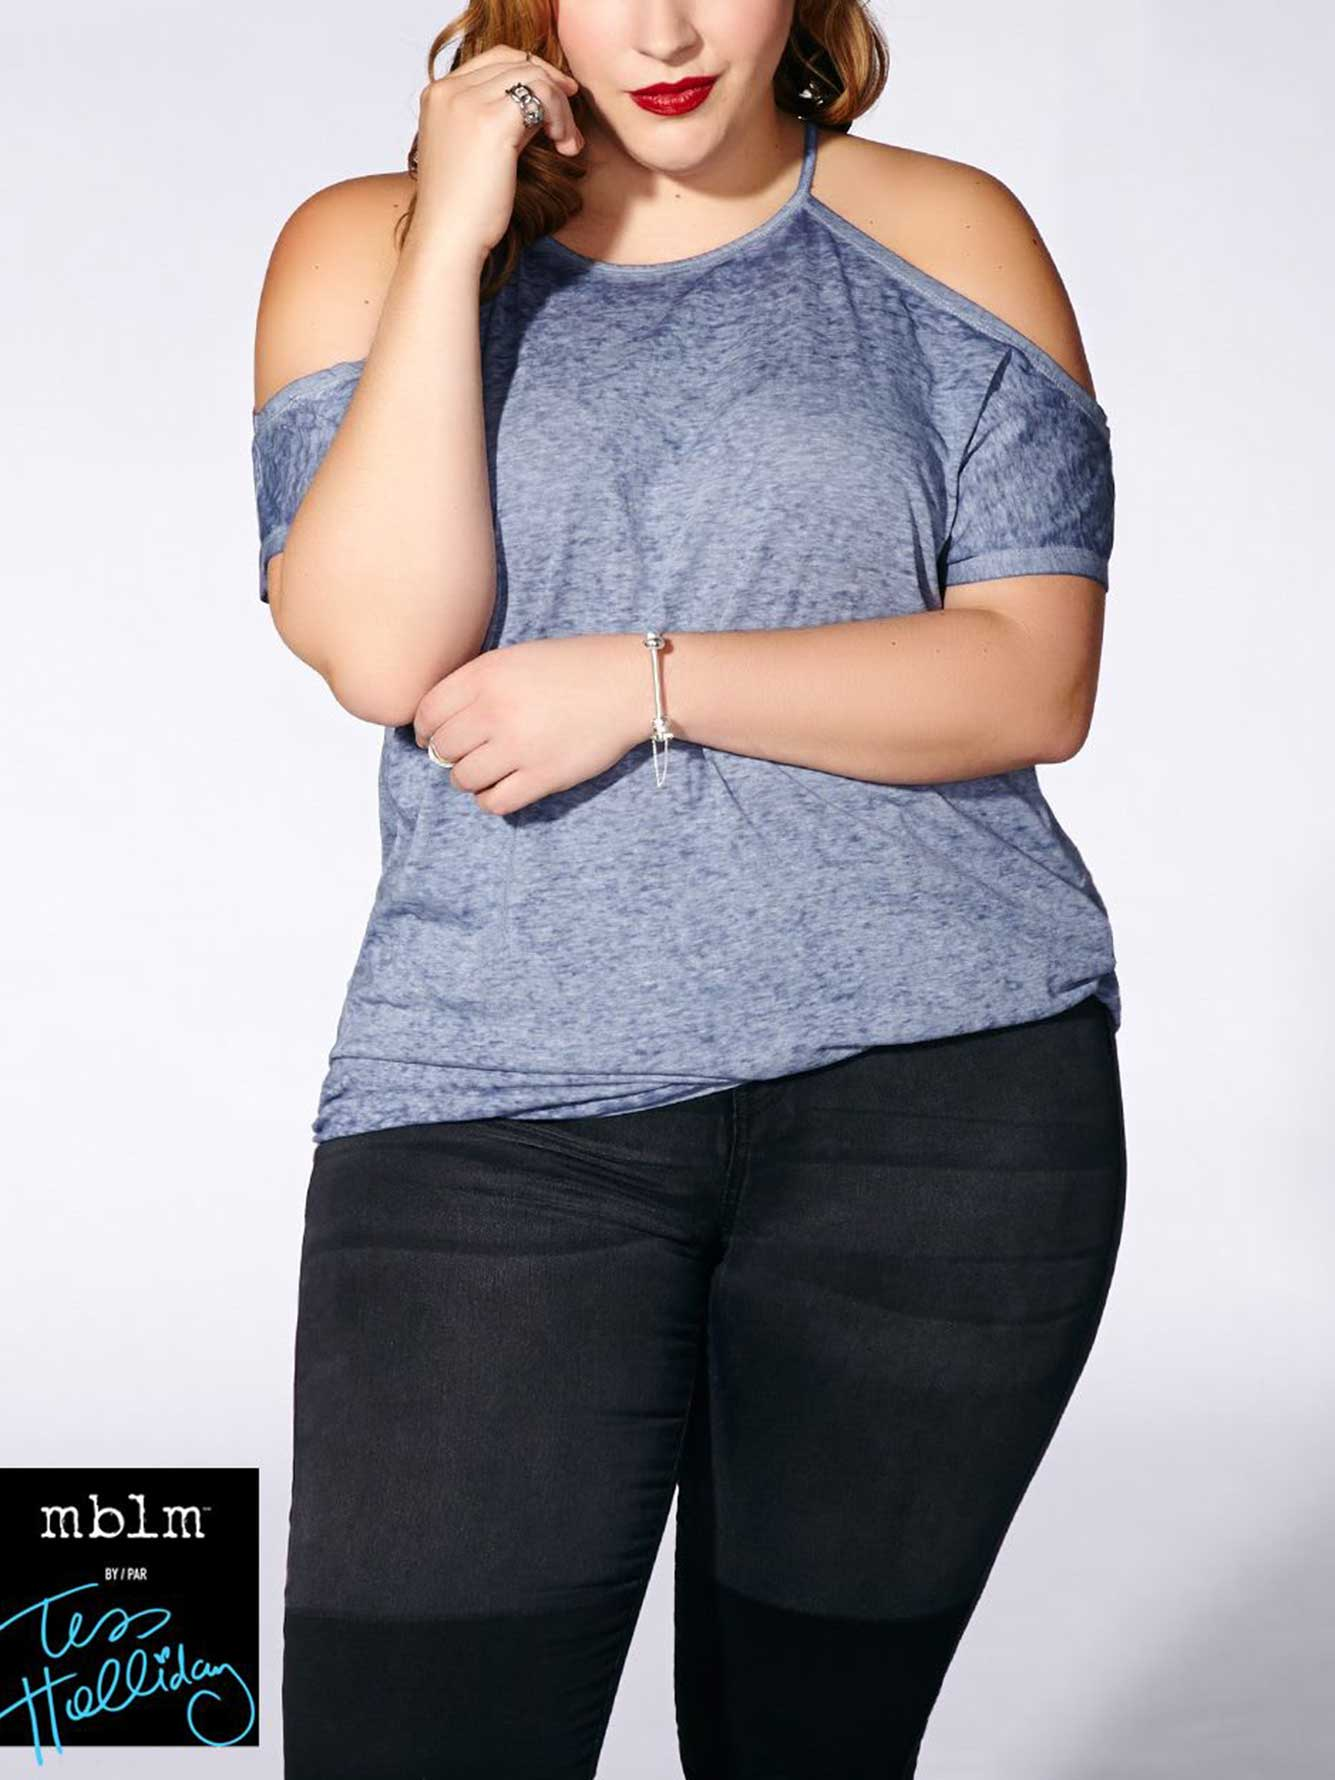 0723ee145882e0 Tess Holliday - Short Sleeve Cold Shoulder Top